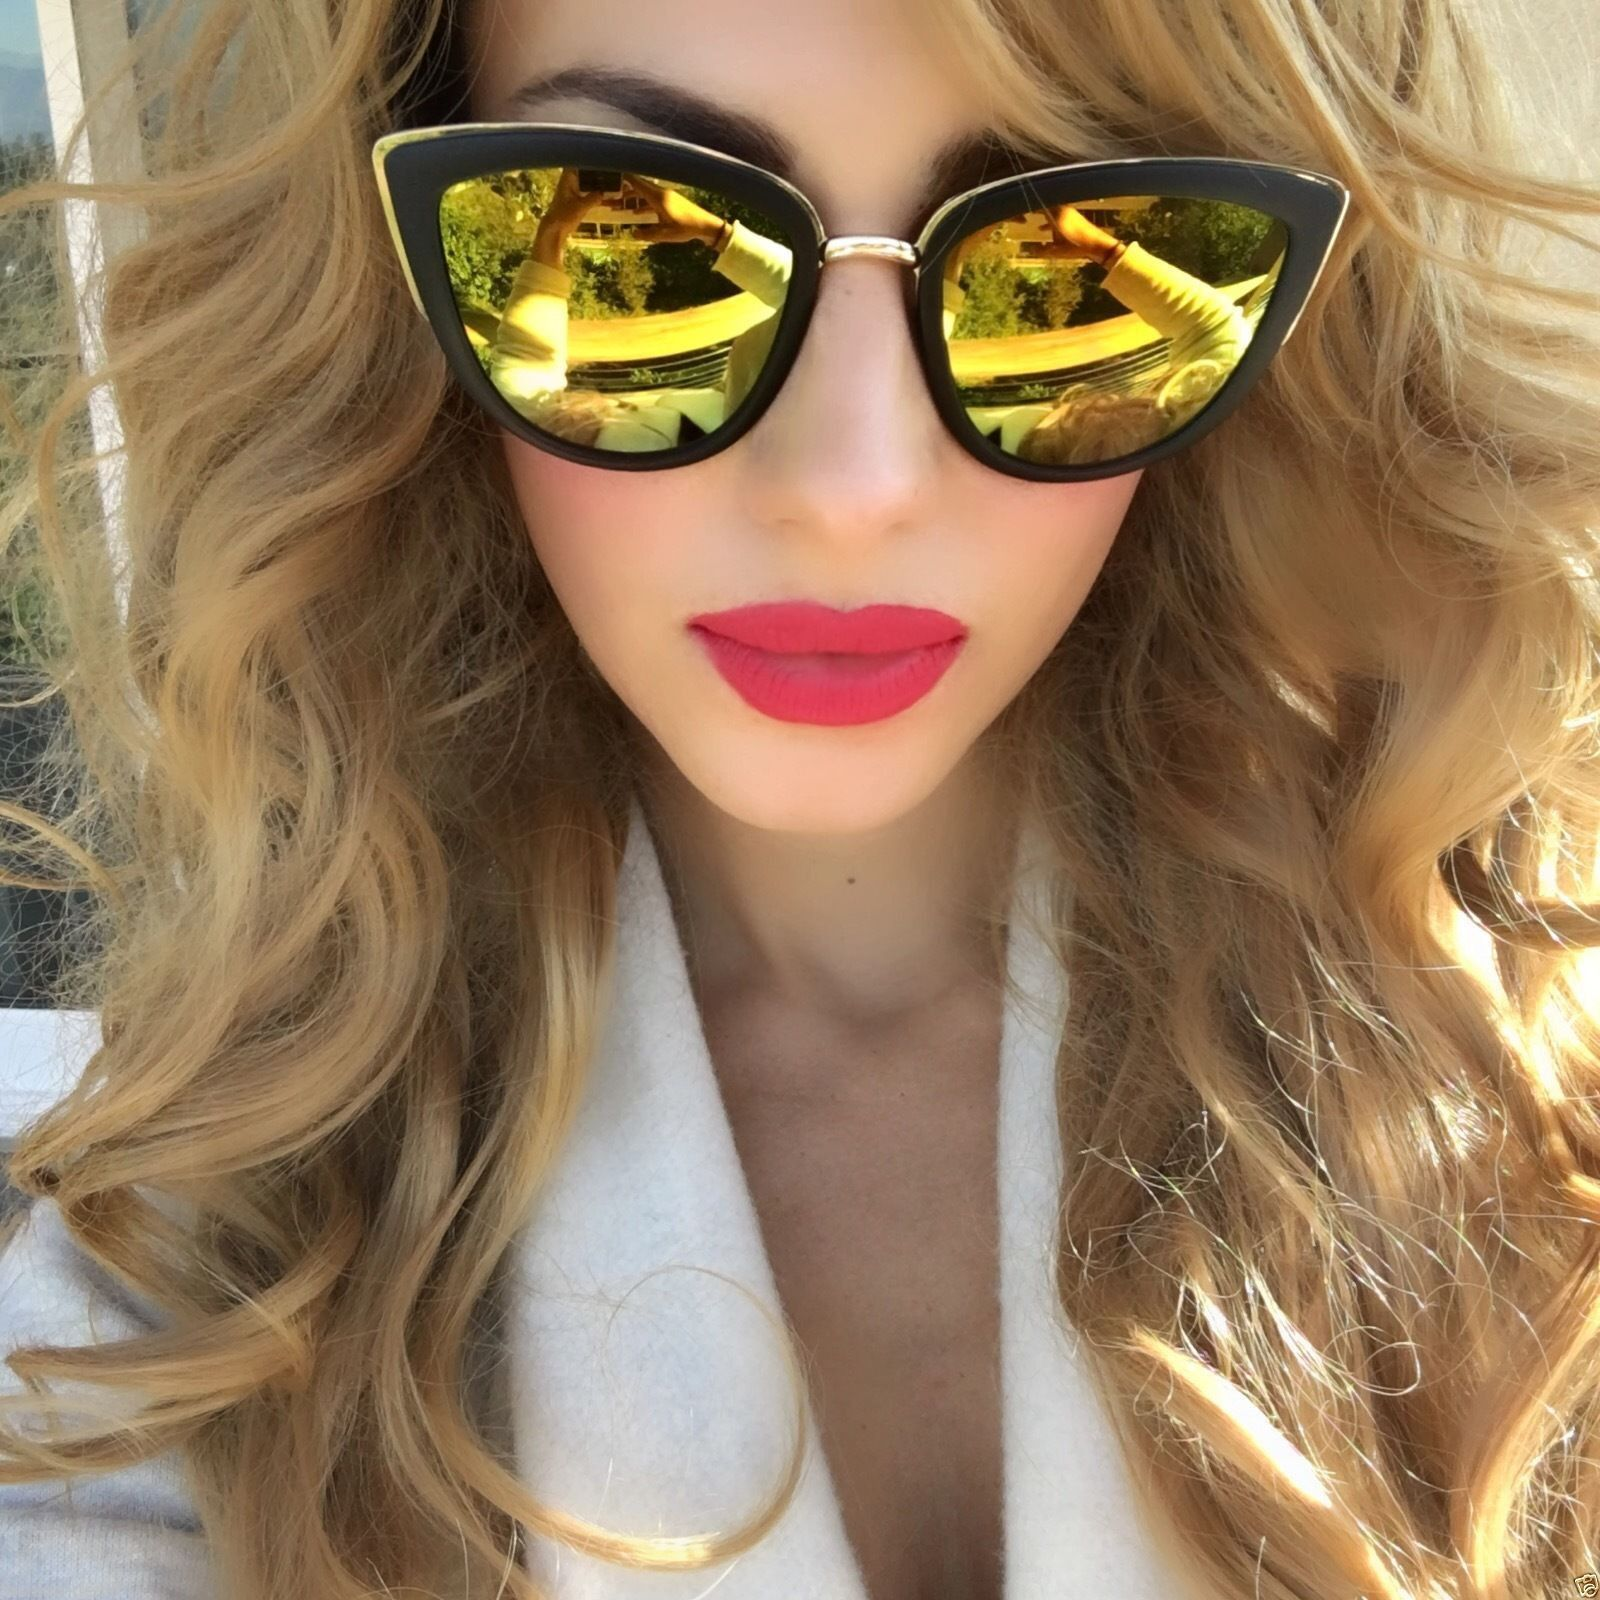 72a88b189386 Oversized shiny cat eye sunglasses. Big cat eye sunglasses with metal bridge.  Various gorgeous revo mirrored rainbow lenses. 100% UVA UVB protection.